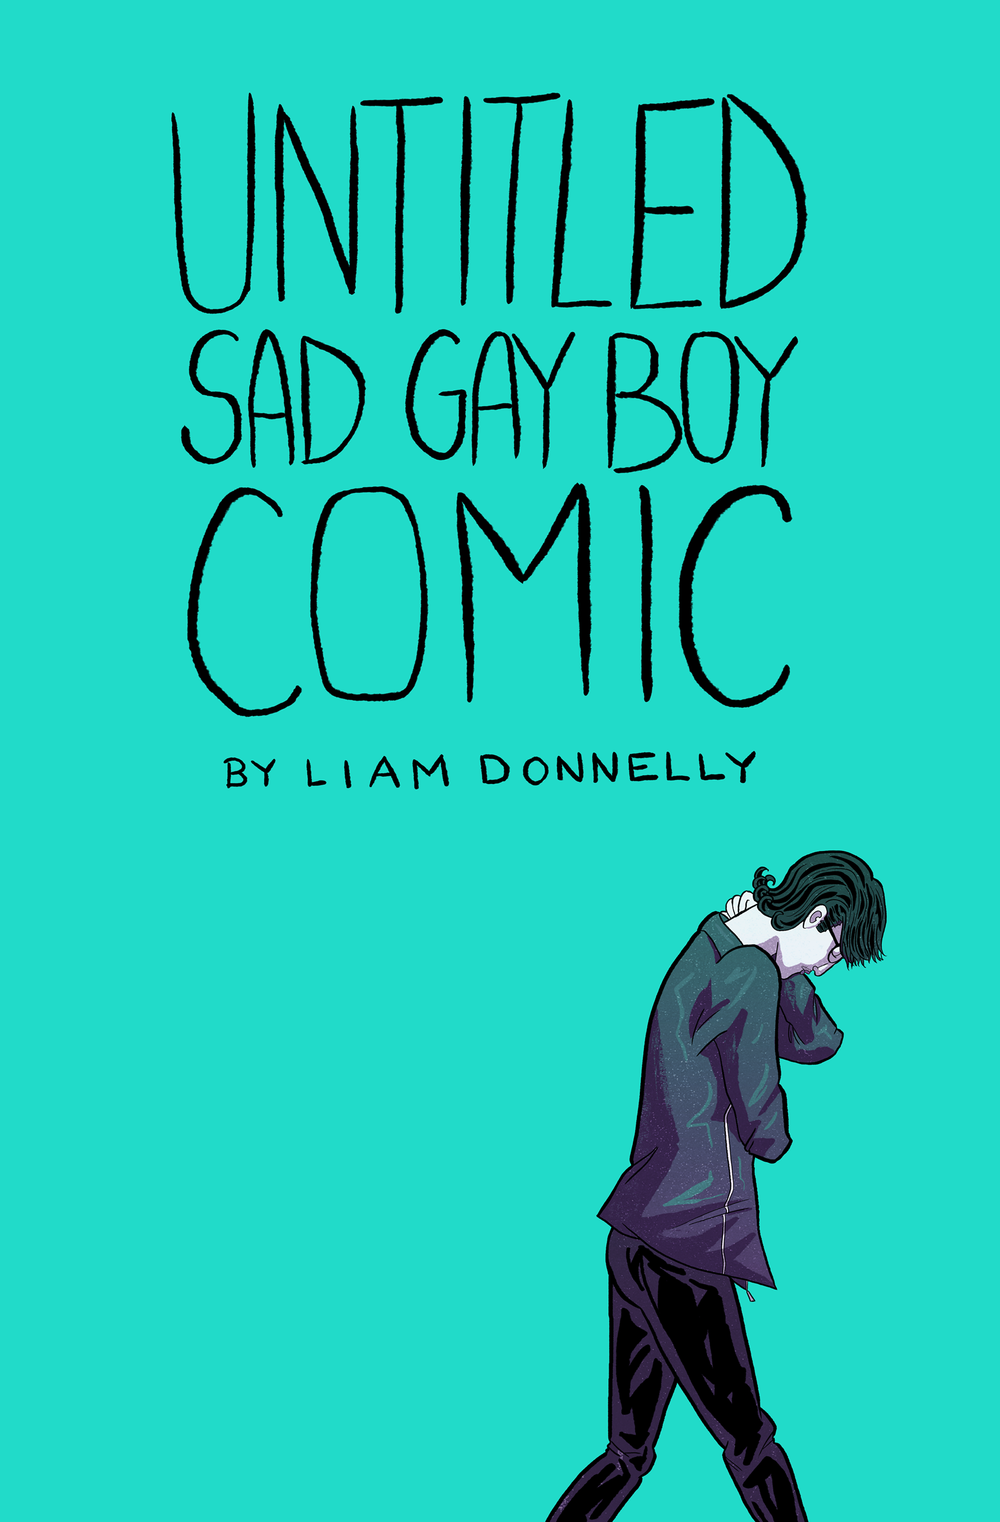 00Untitled Sad Gay Boy Comic - Cover.png